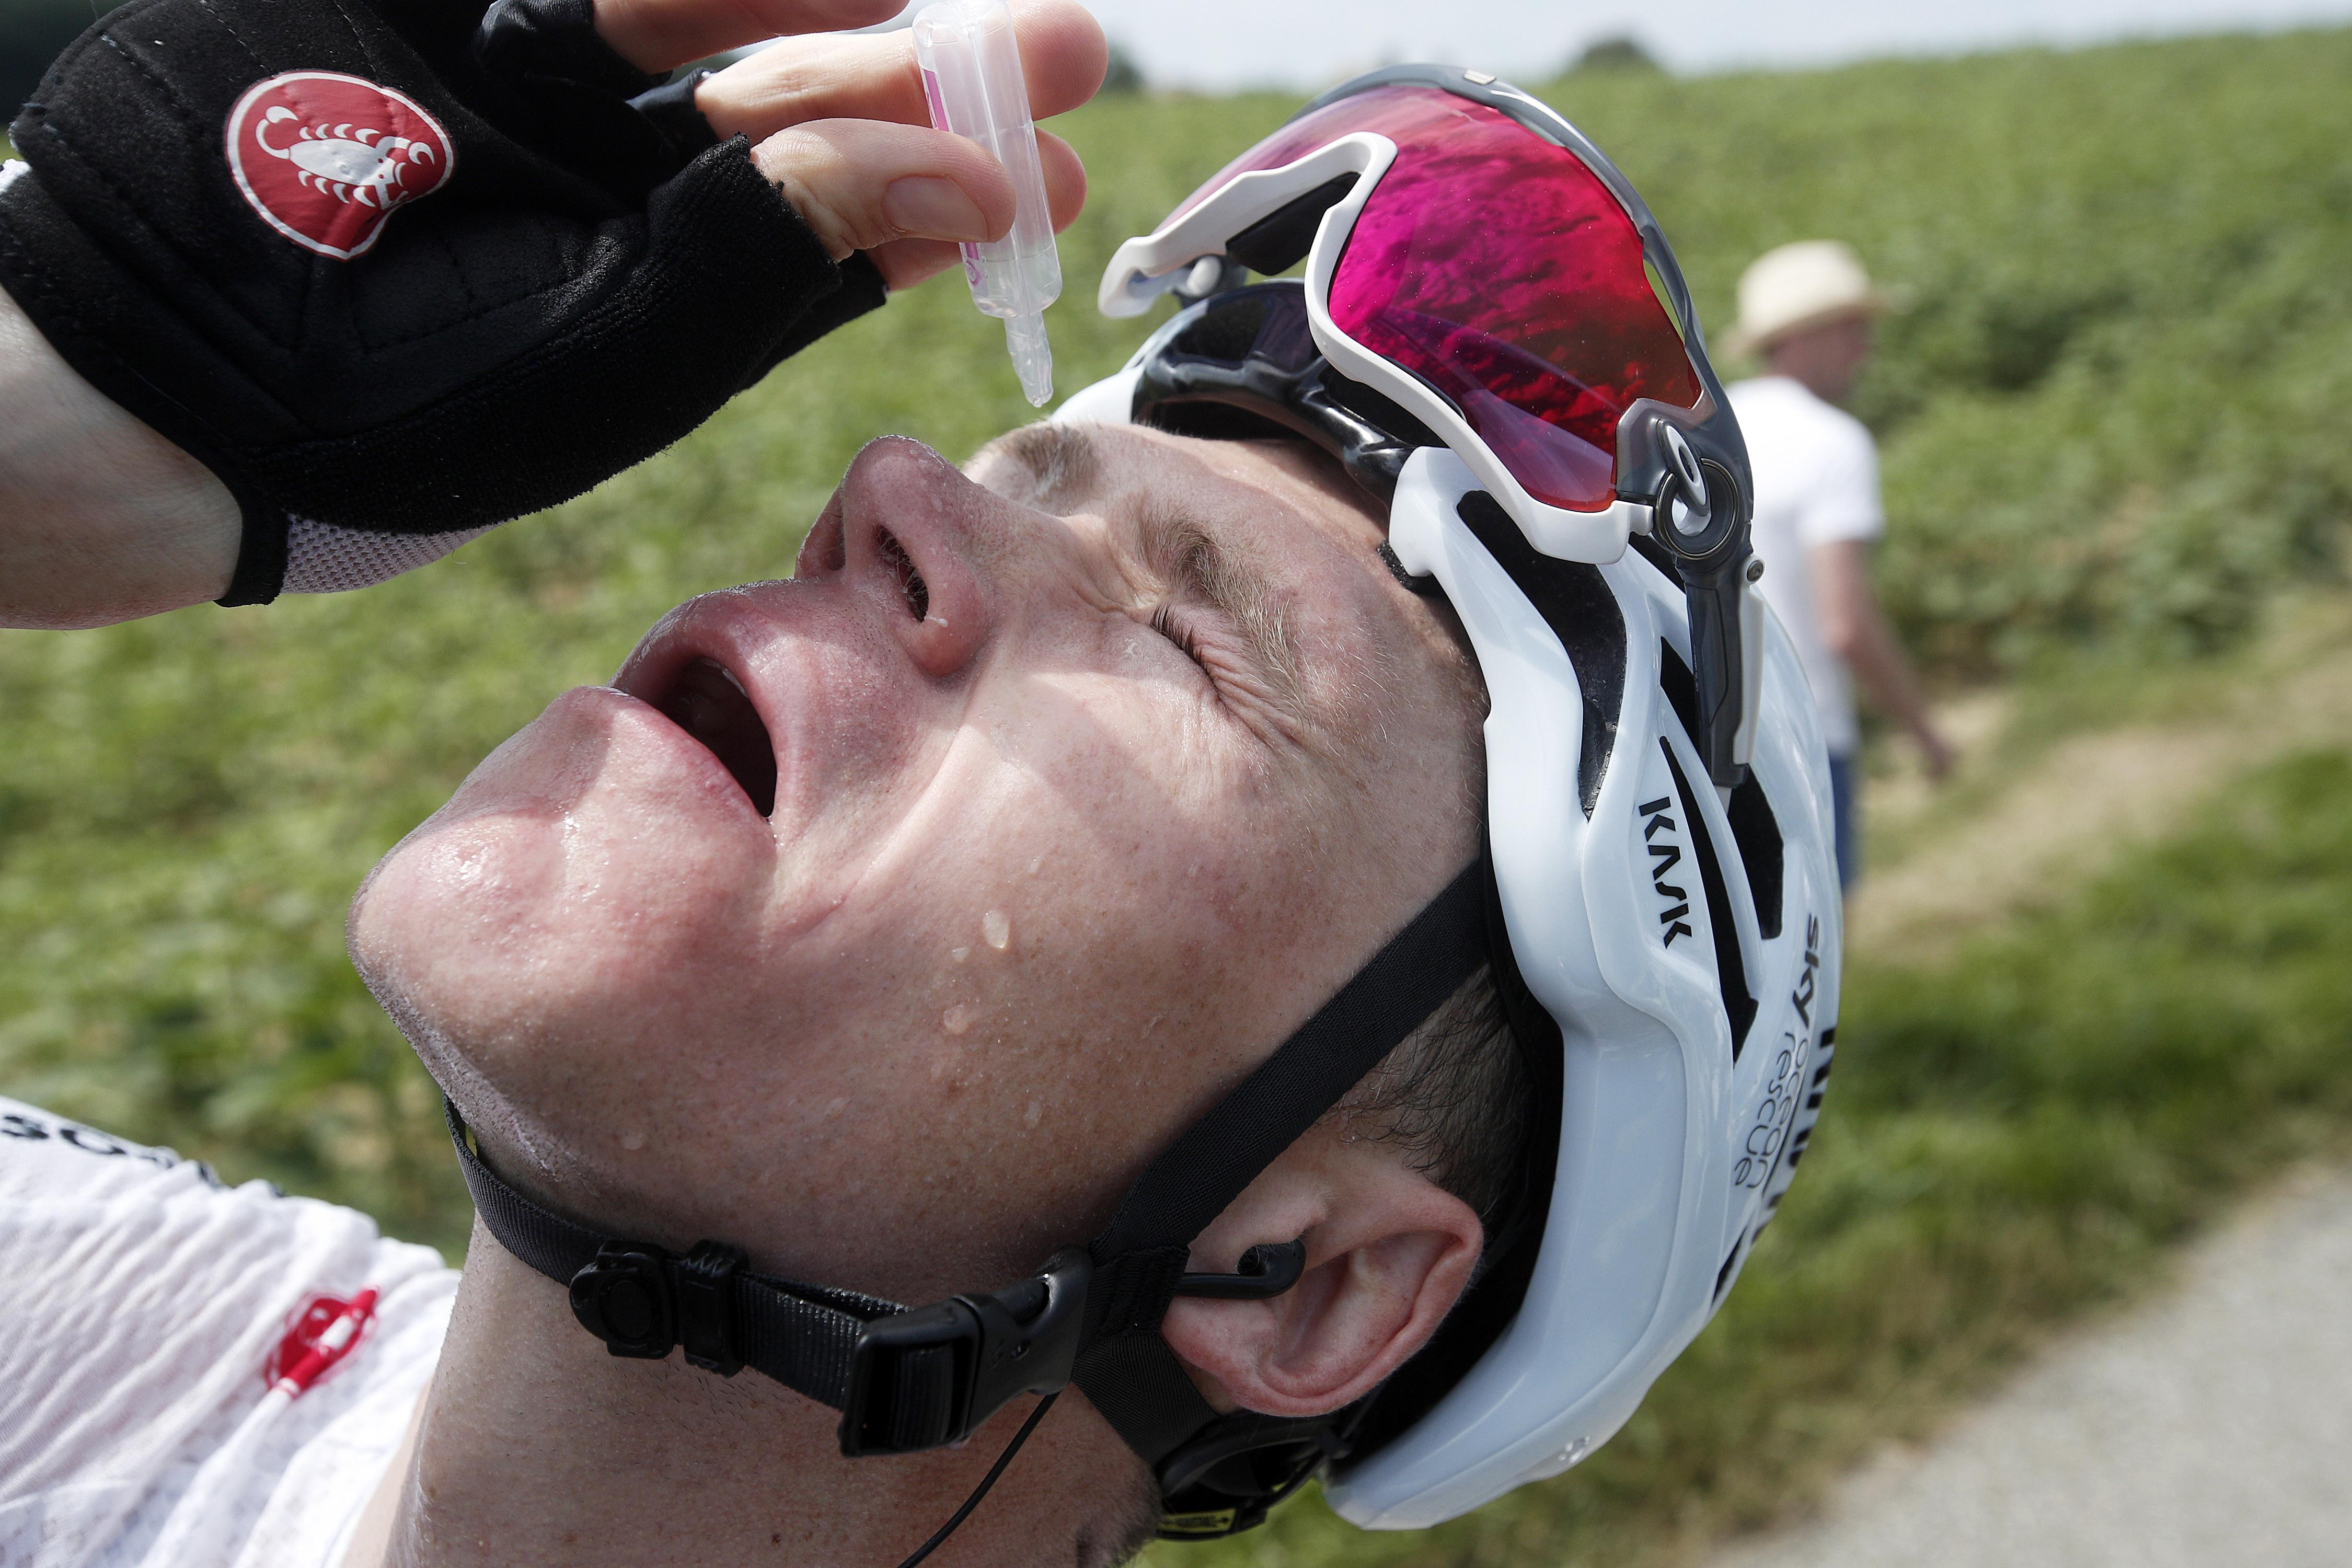 Chris Froome puts eye drops in his eyes after being affected by the gas